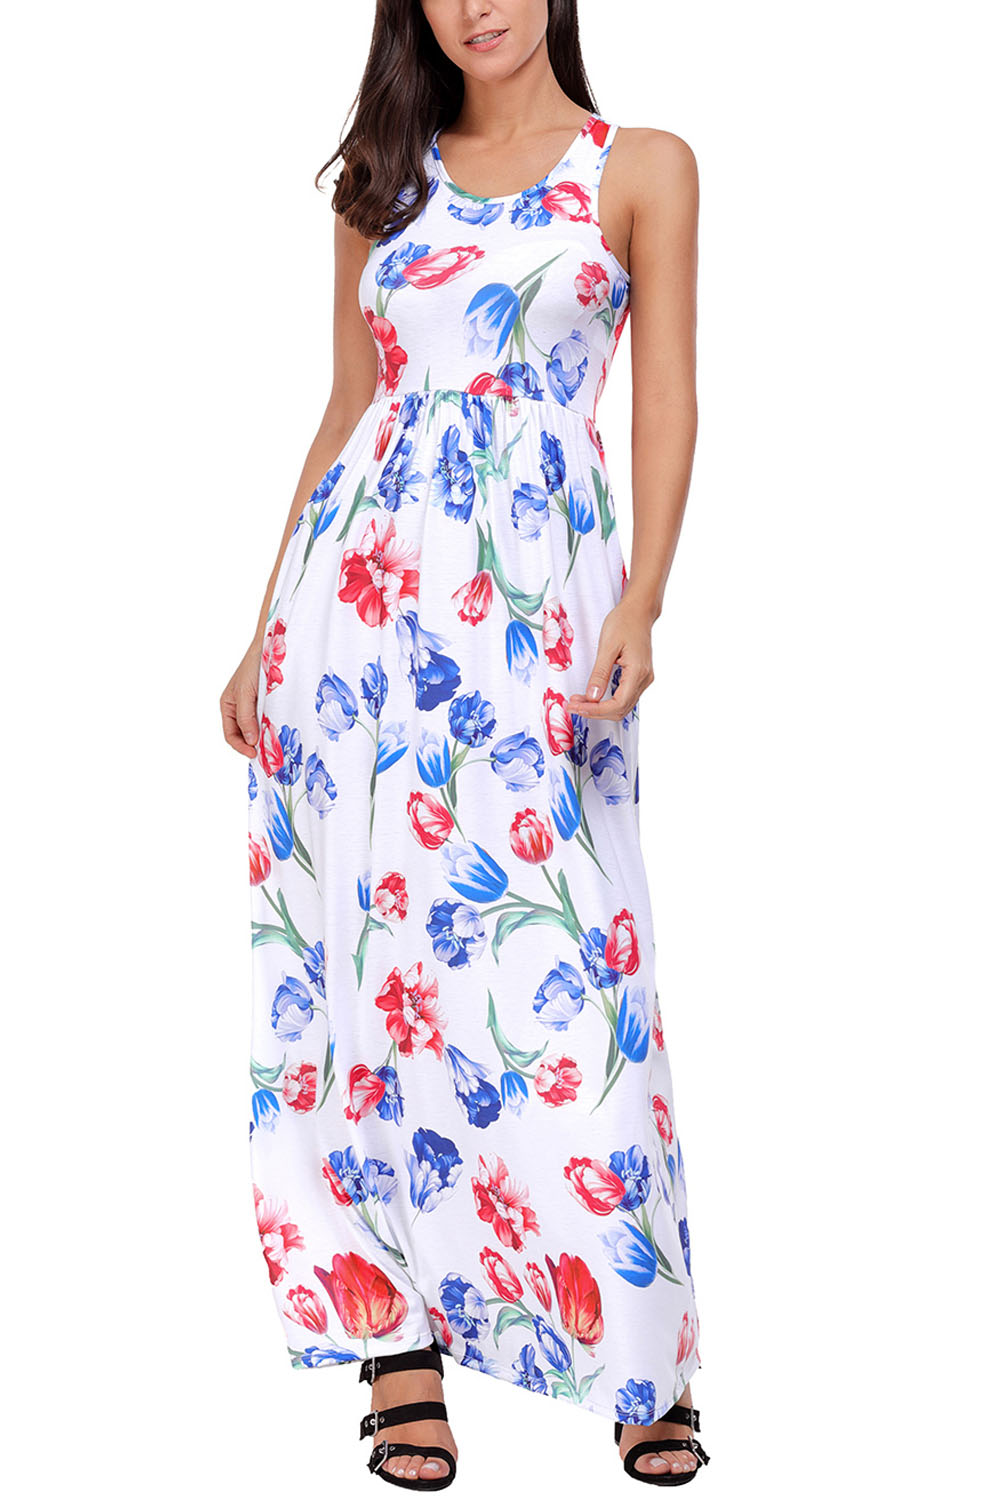 White Blossom Print Sleeveless Long Boho Dress